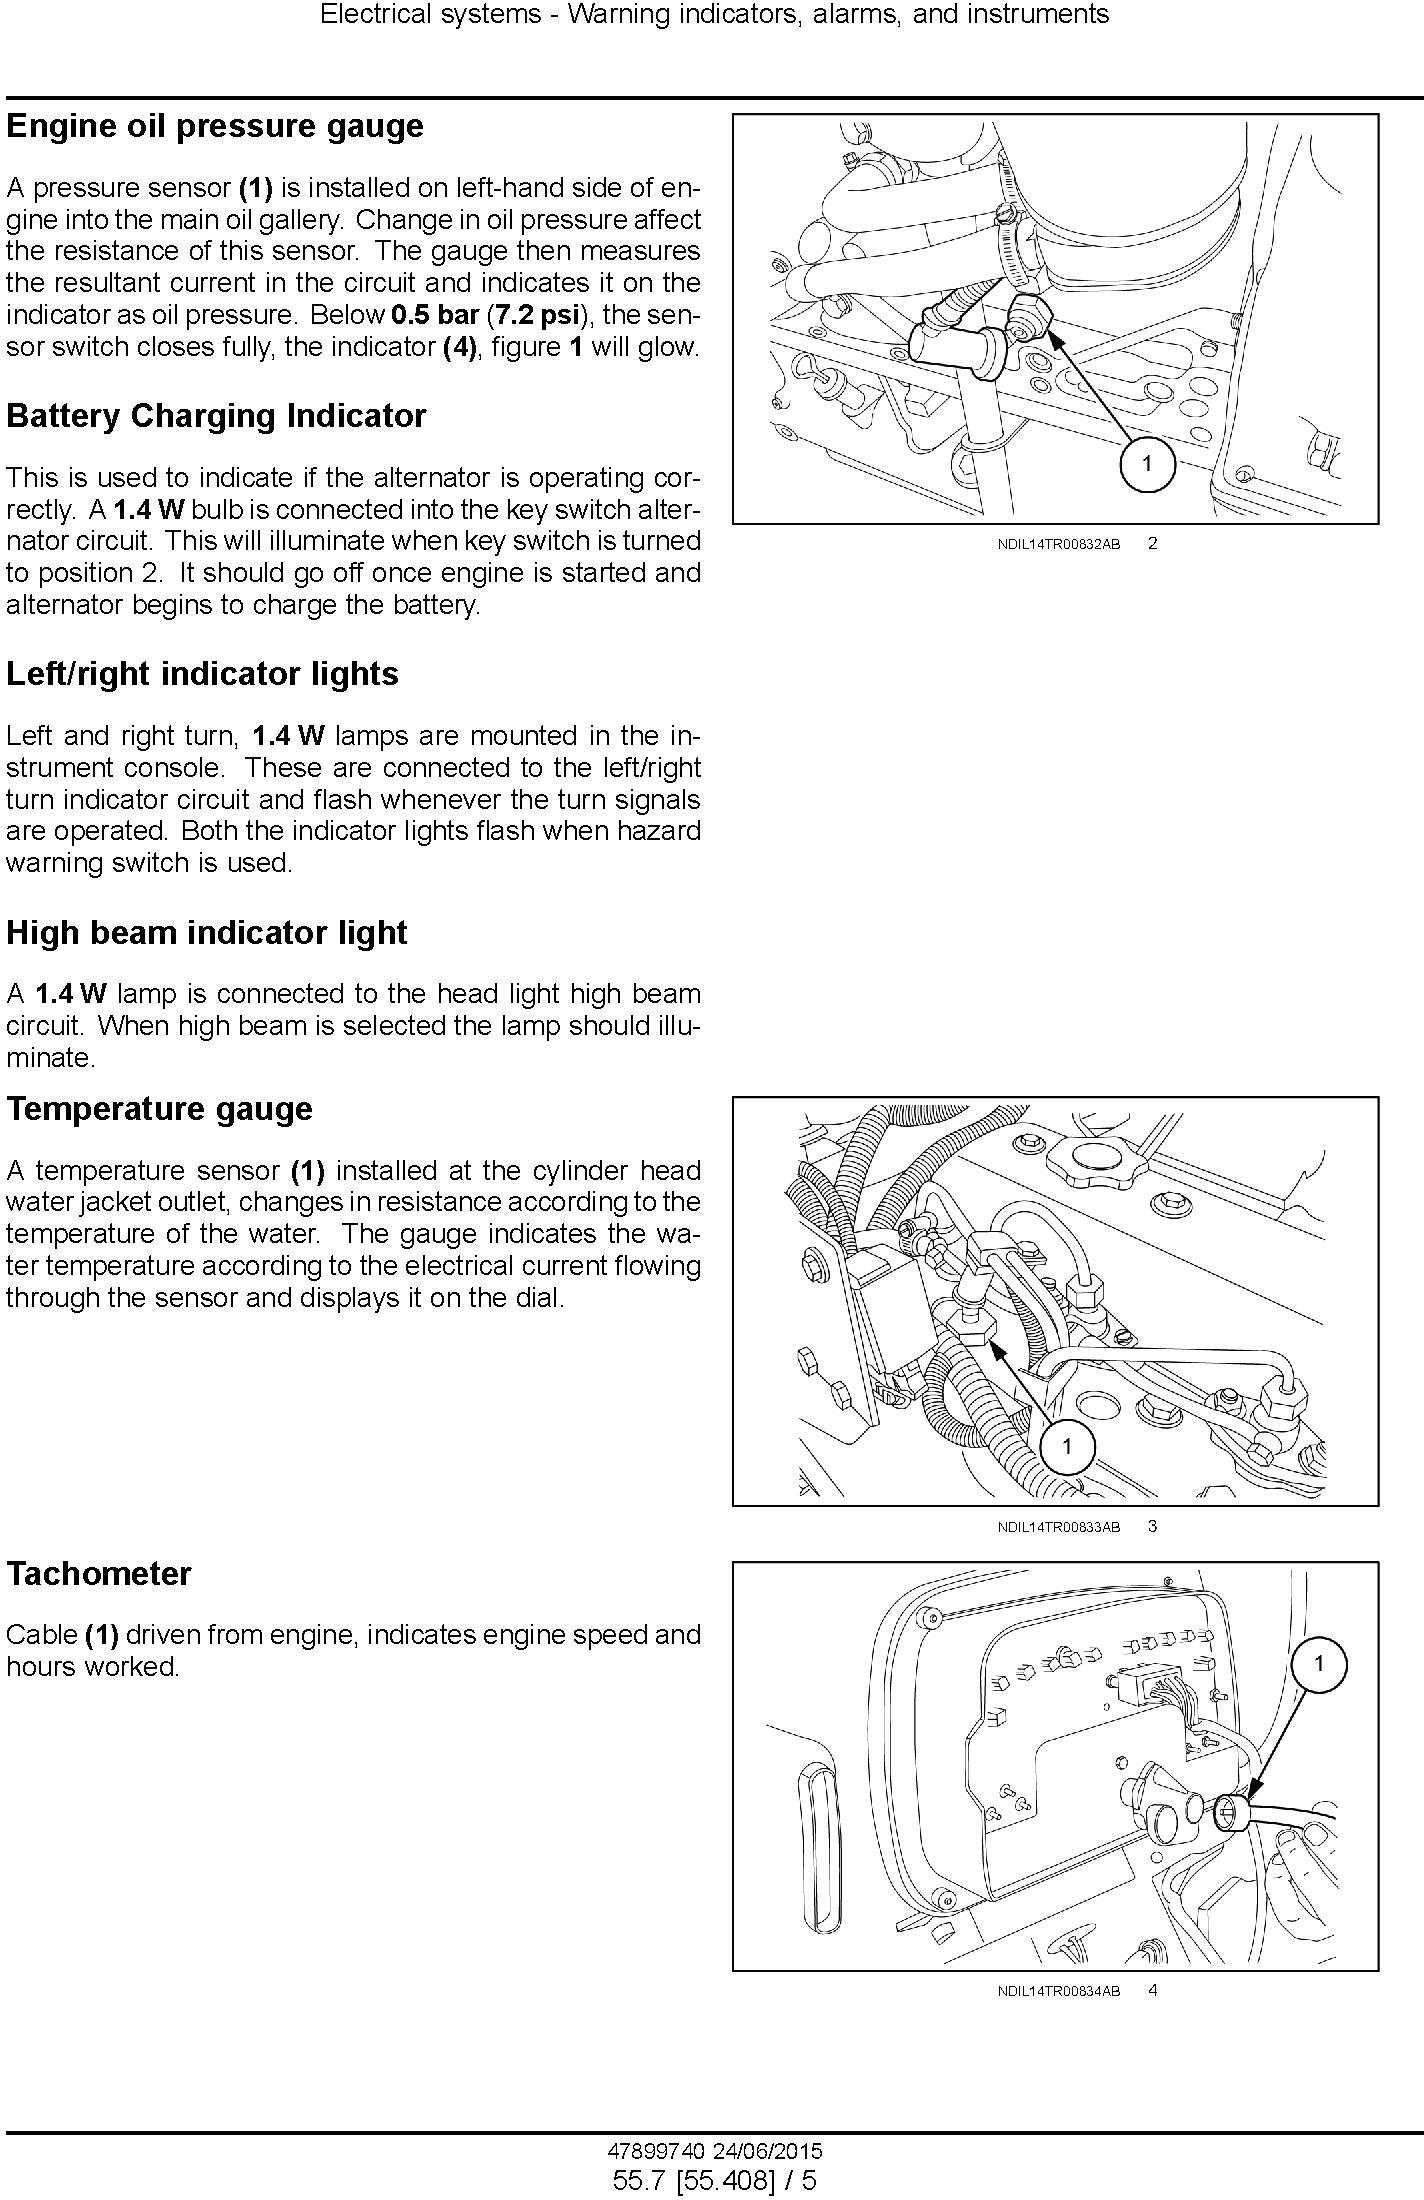 New Holland 5500, 6500, 7500 Tier 3 Tractor Service Manual - 1